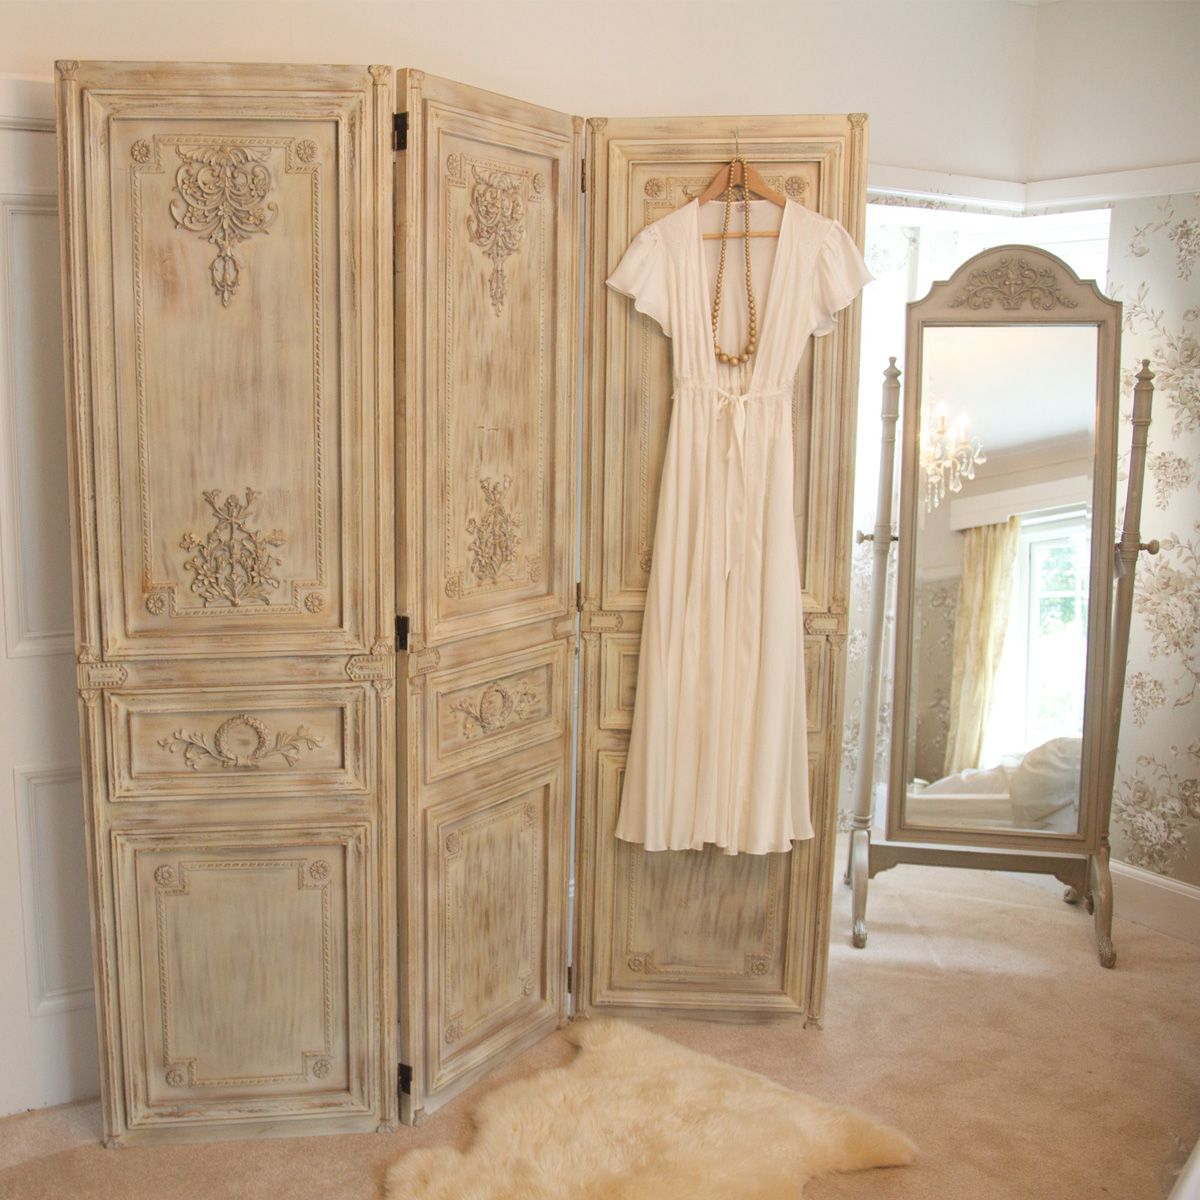 Room Divider Screen Limed Wooden Dressing Screen Image 1 by The